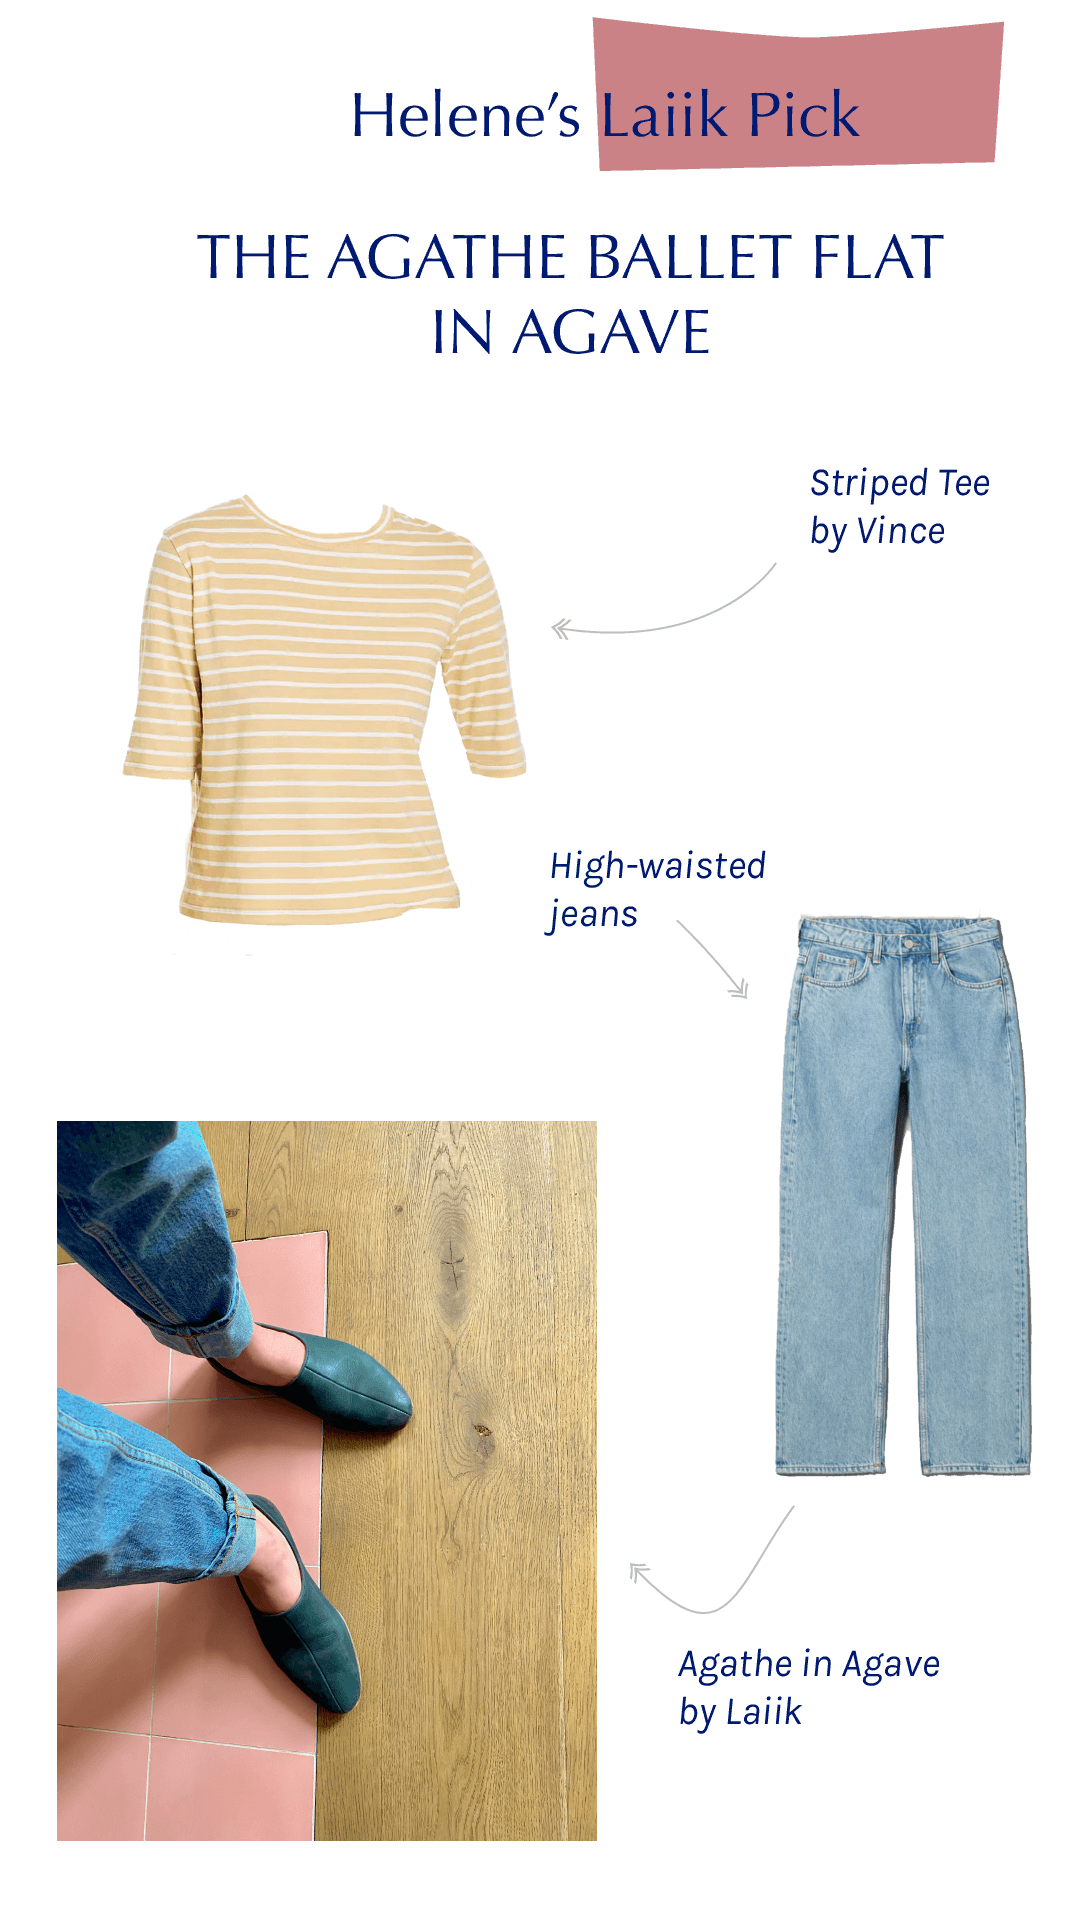 The Agathe ballet flat in Agave paired with high-waisted jeans and a striped shirt by Vince